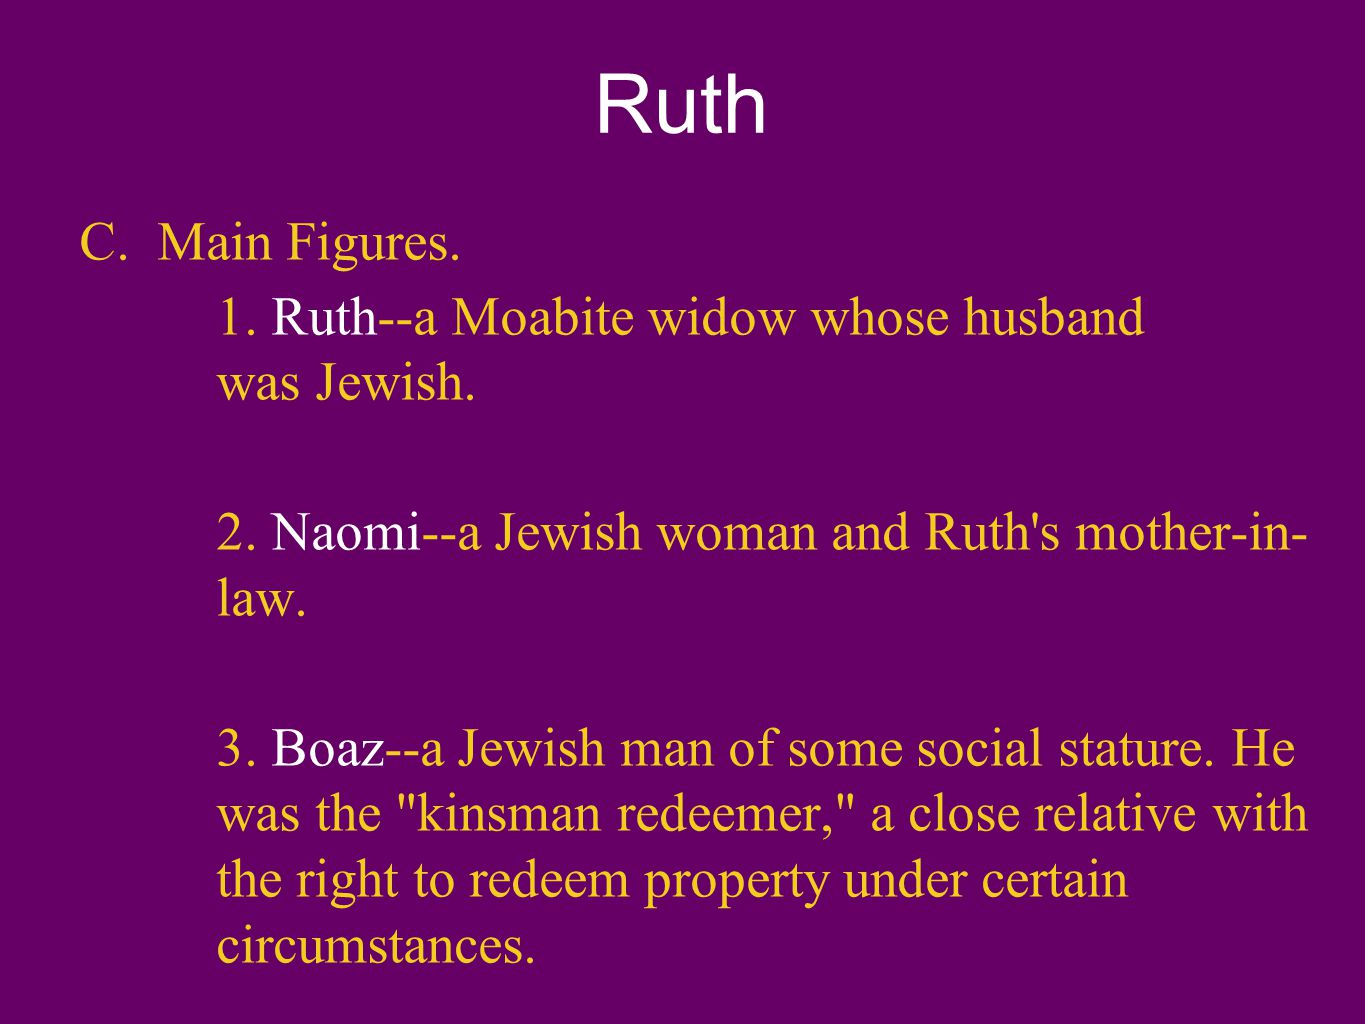 Ruth C. Main Figures. 1. Ruth--a Moabite widow whose husband was Jewish.